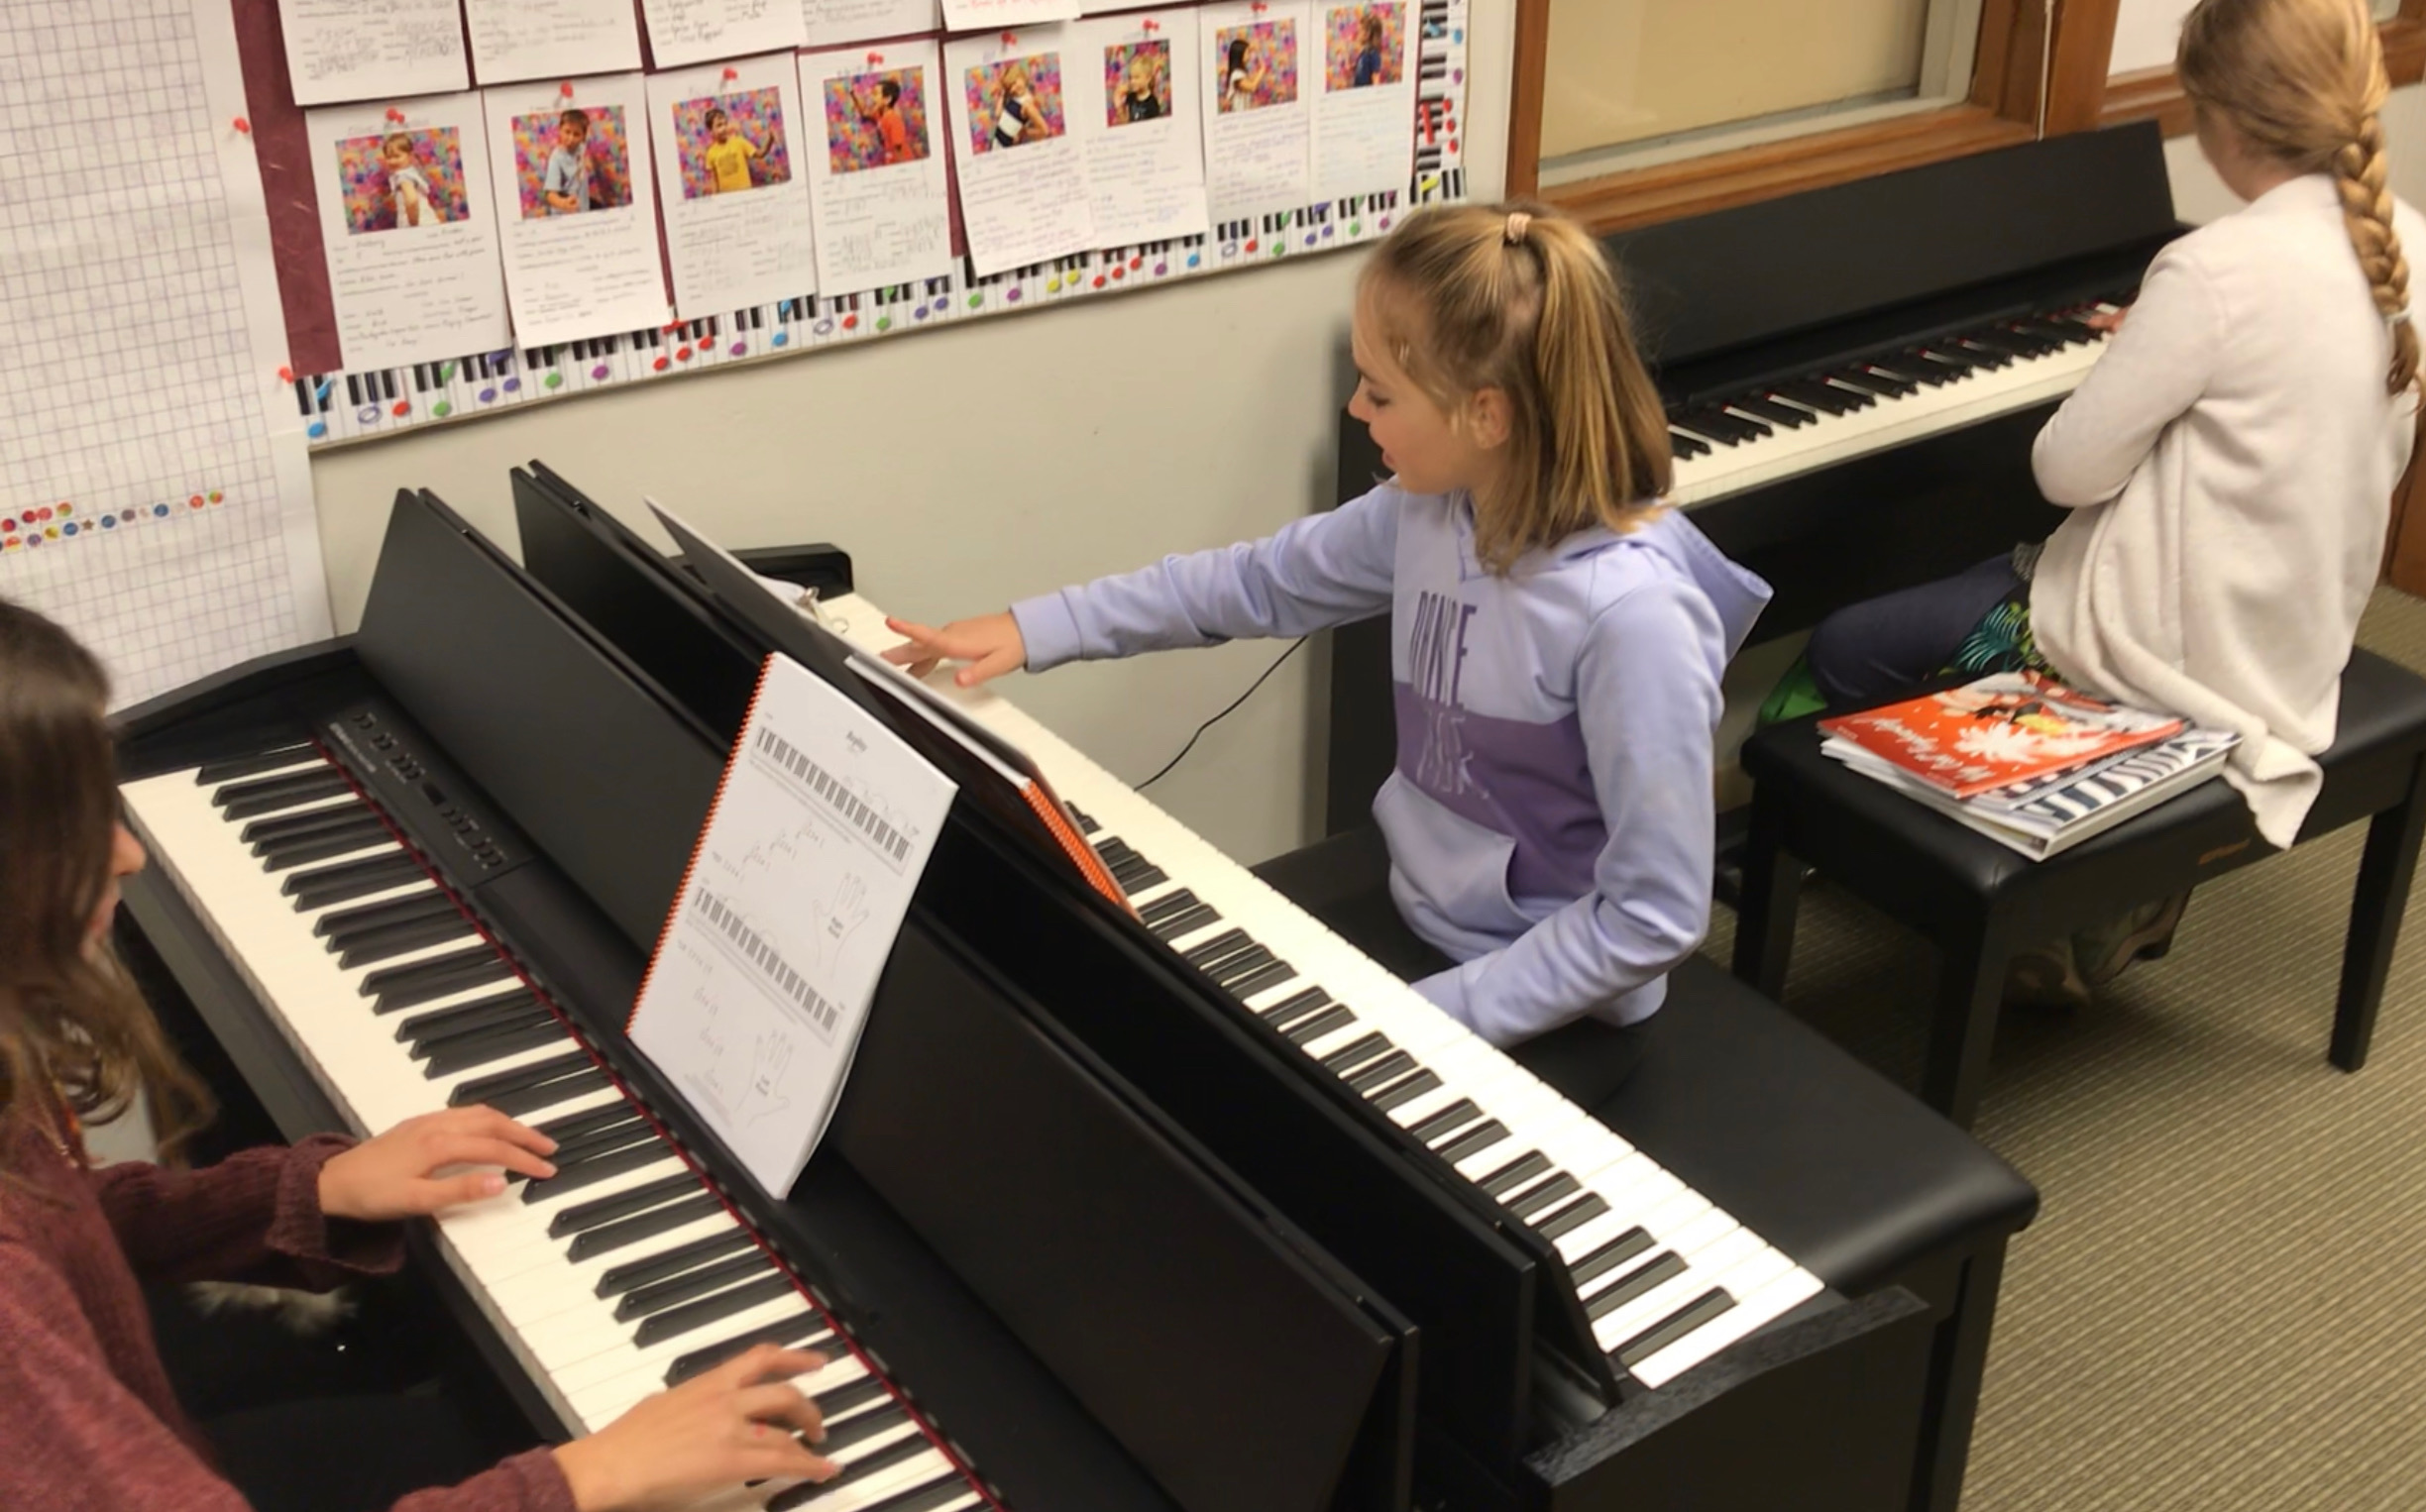 Students leave Vibrant Valley with a well-rounded music education and the skills they need to enjoy music independently or with others. Not only can they play their instrument, they also leave with friendships and colorful memories that enrich their lives. -